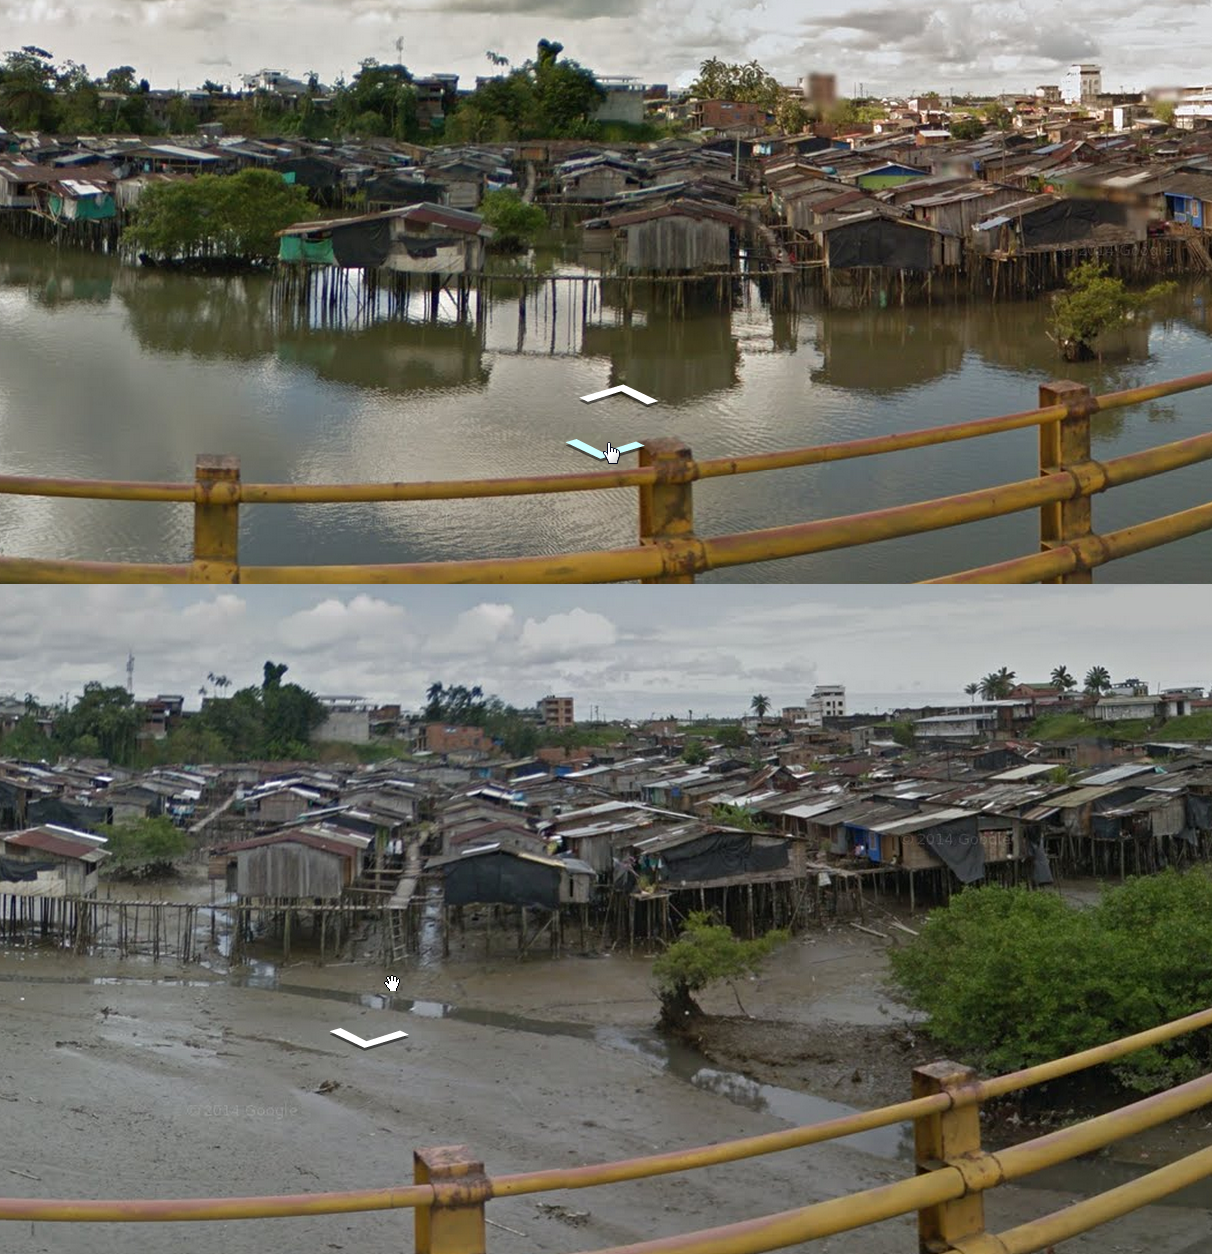 I can see why these Colombian Homes are on Stilts!